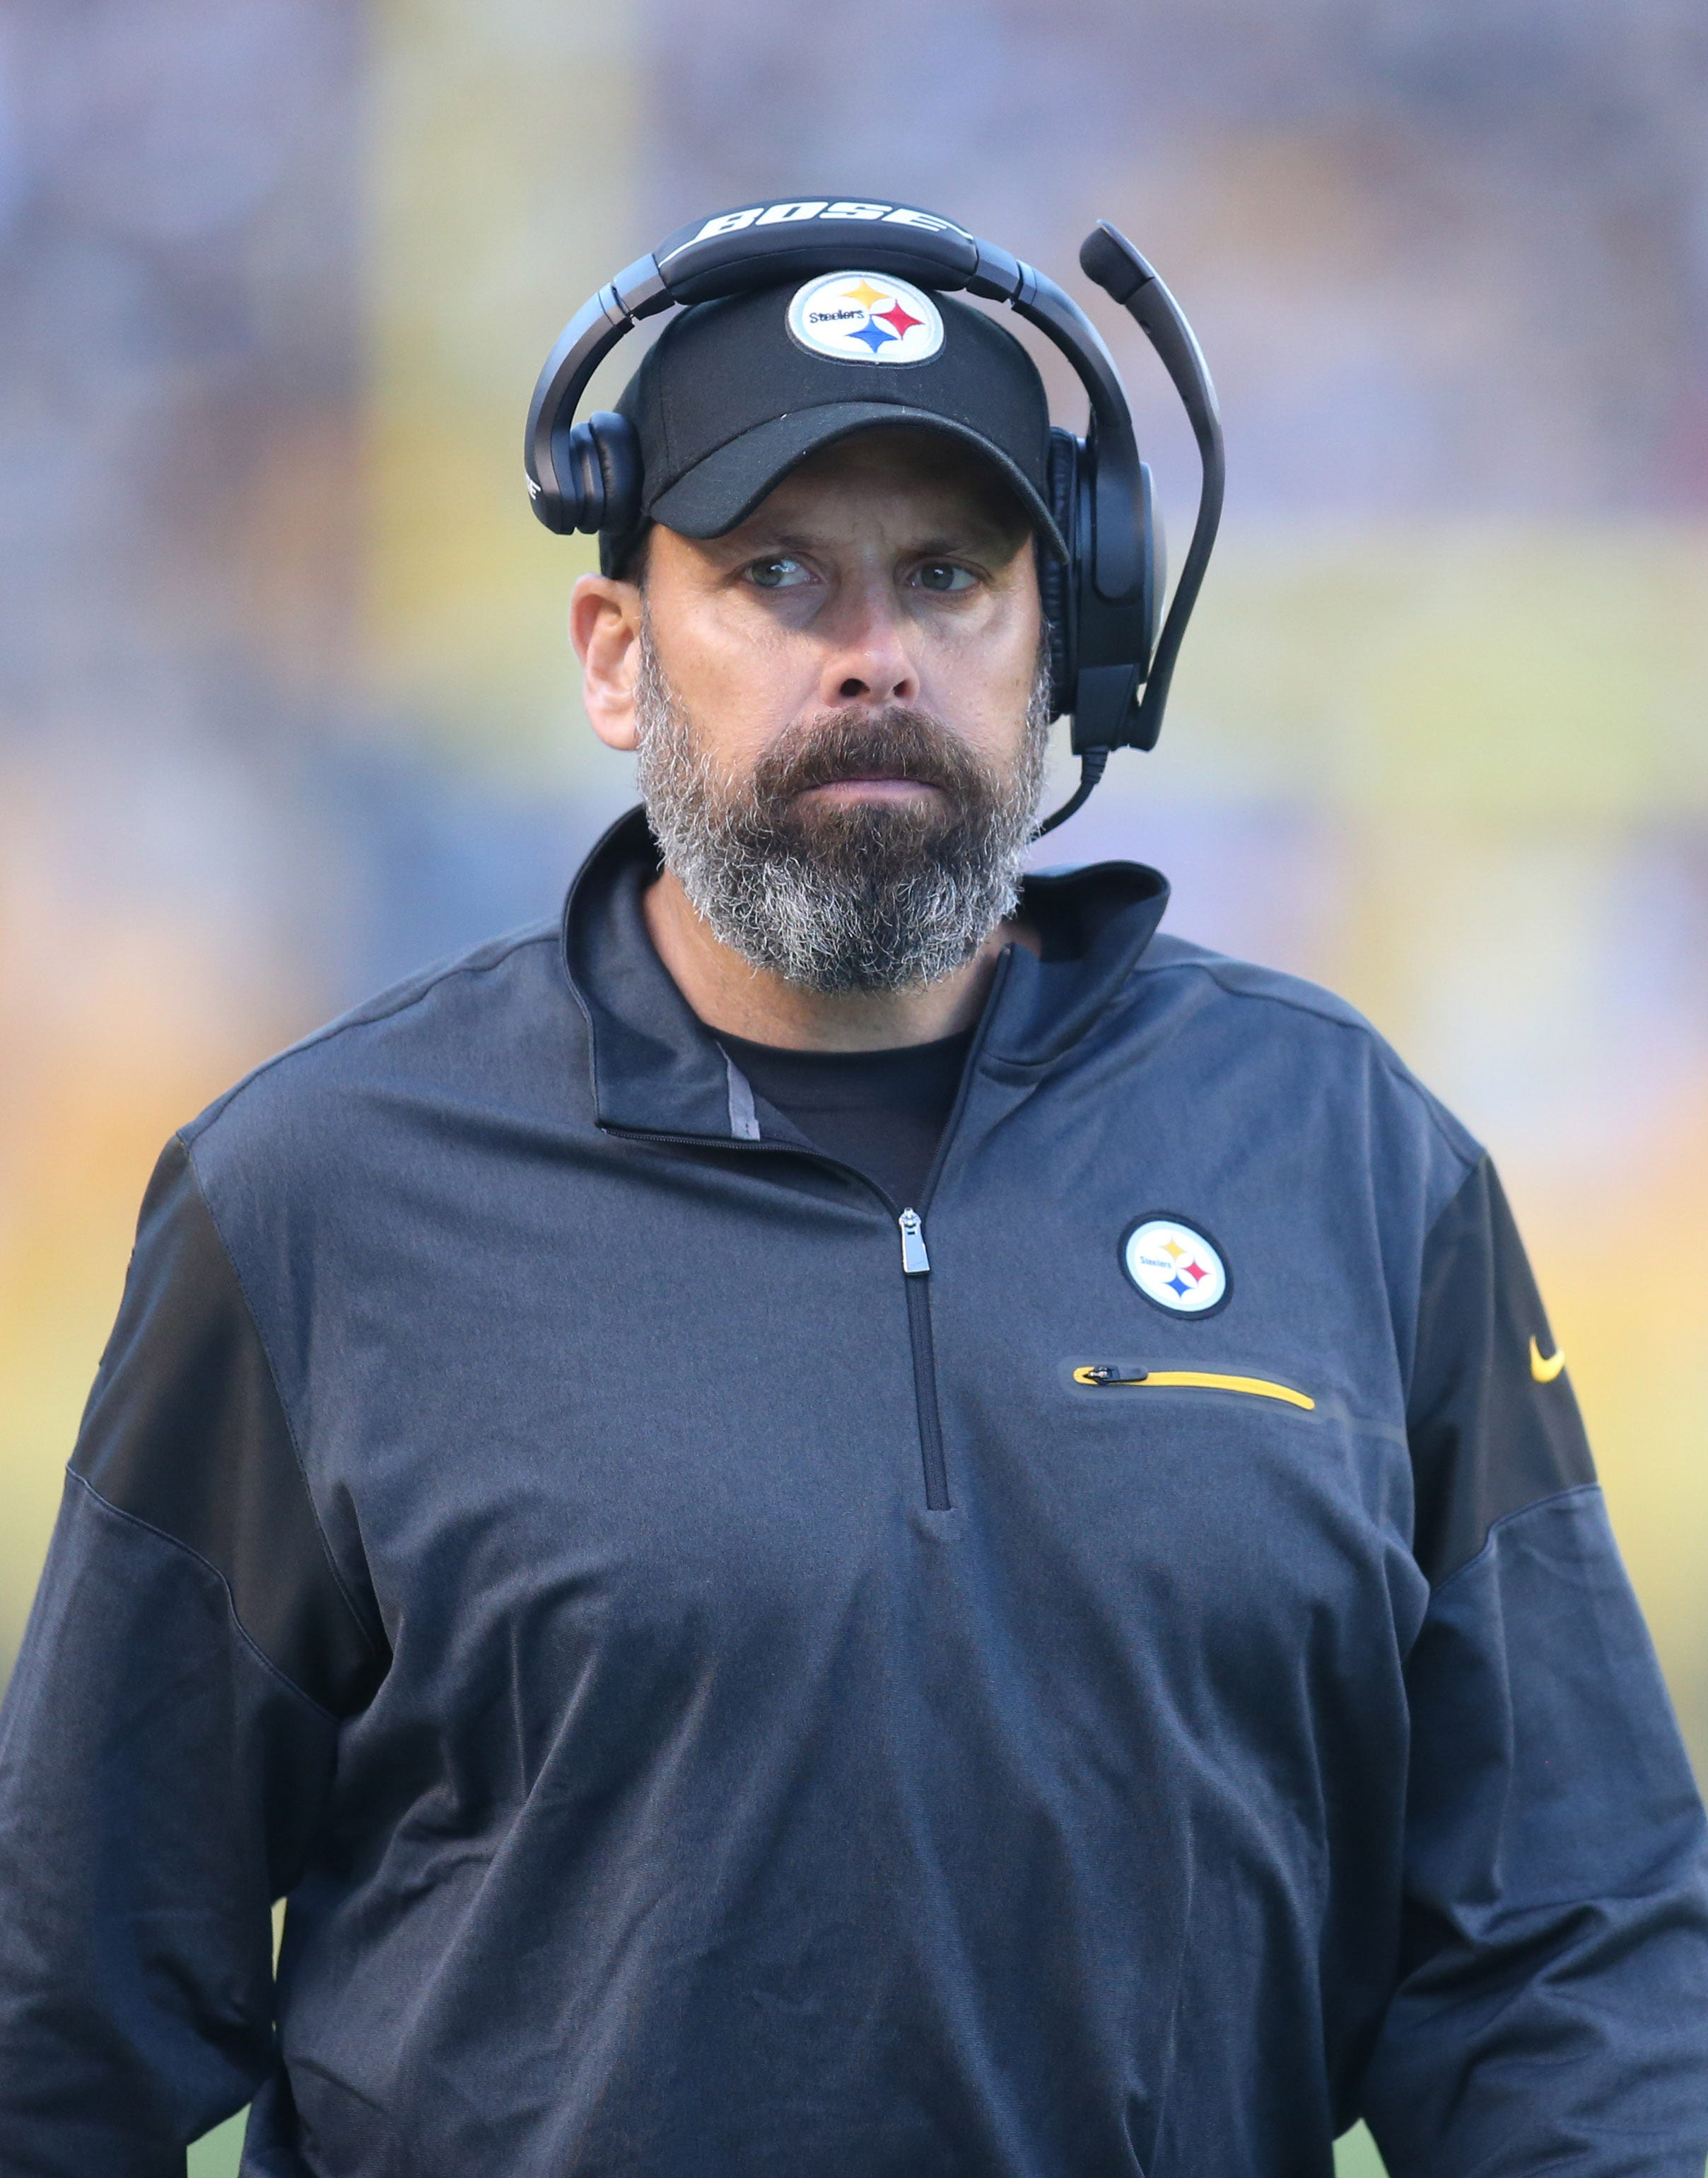 Report: Pittsburgh Steelers OC Todd Haley hurt after being shoved outside bar